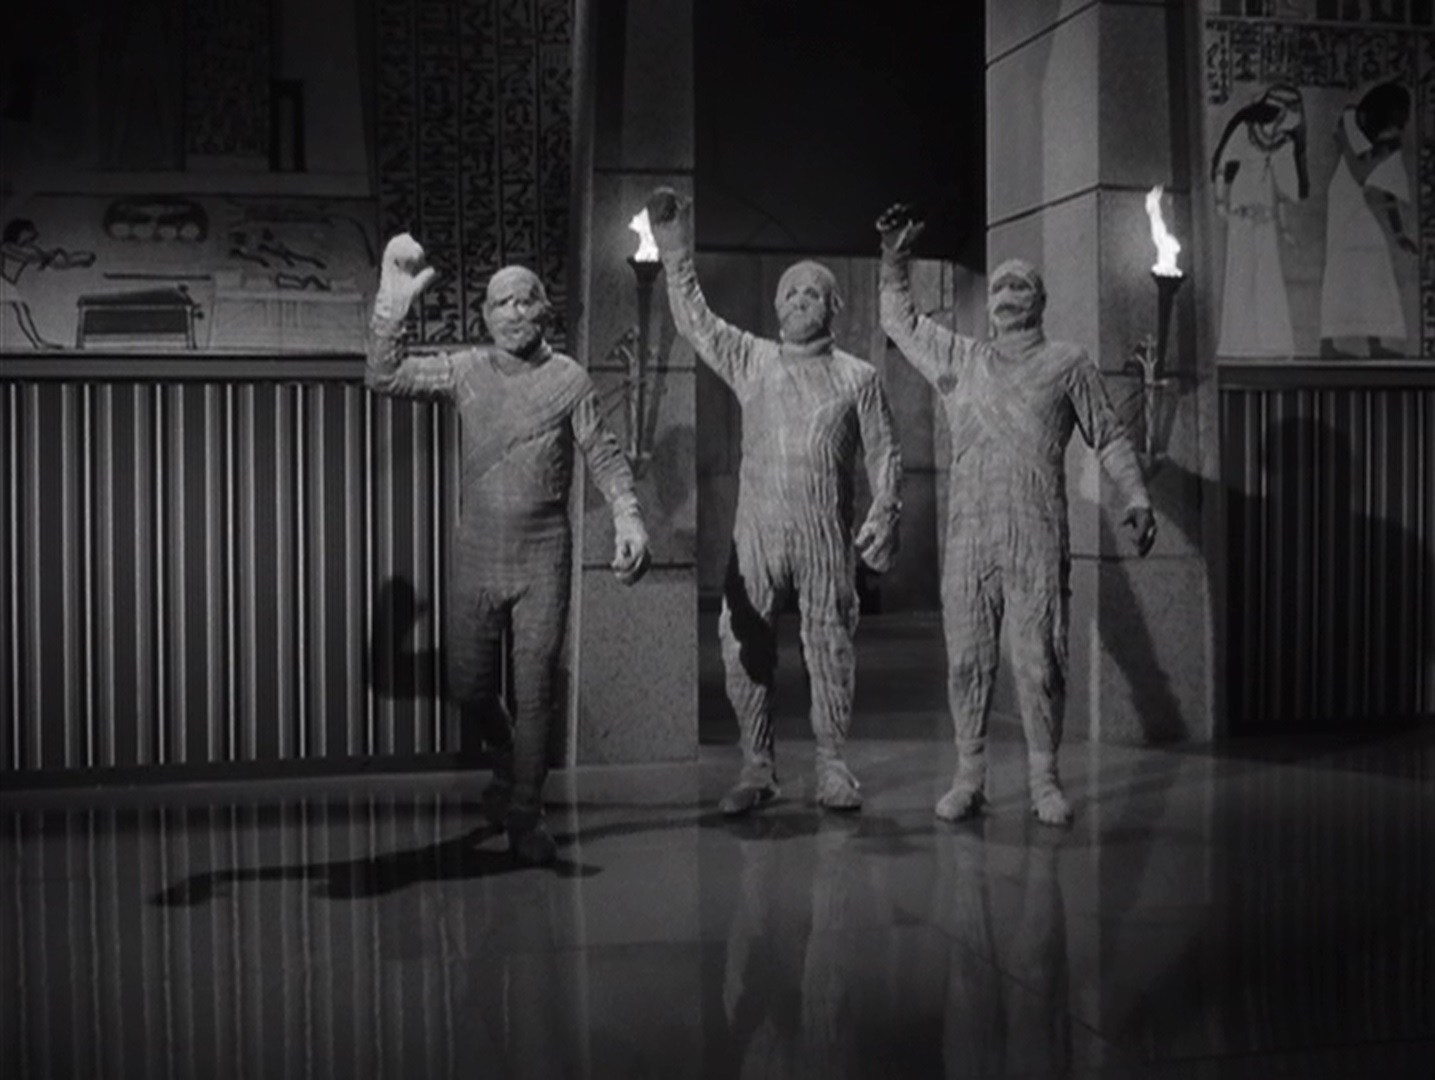 Abbott and Costello Meet The Mummy: 31 Days of Horror